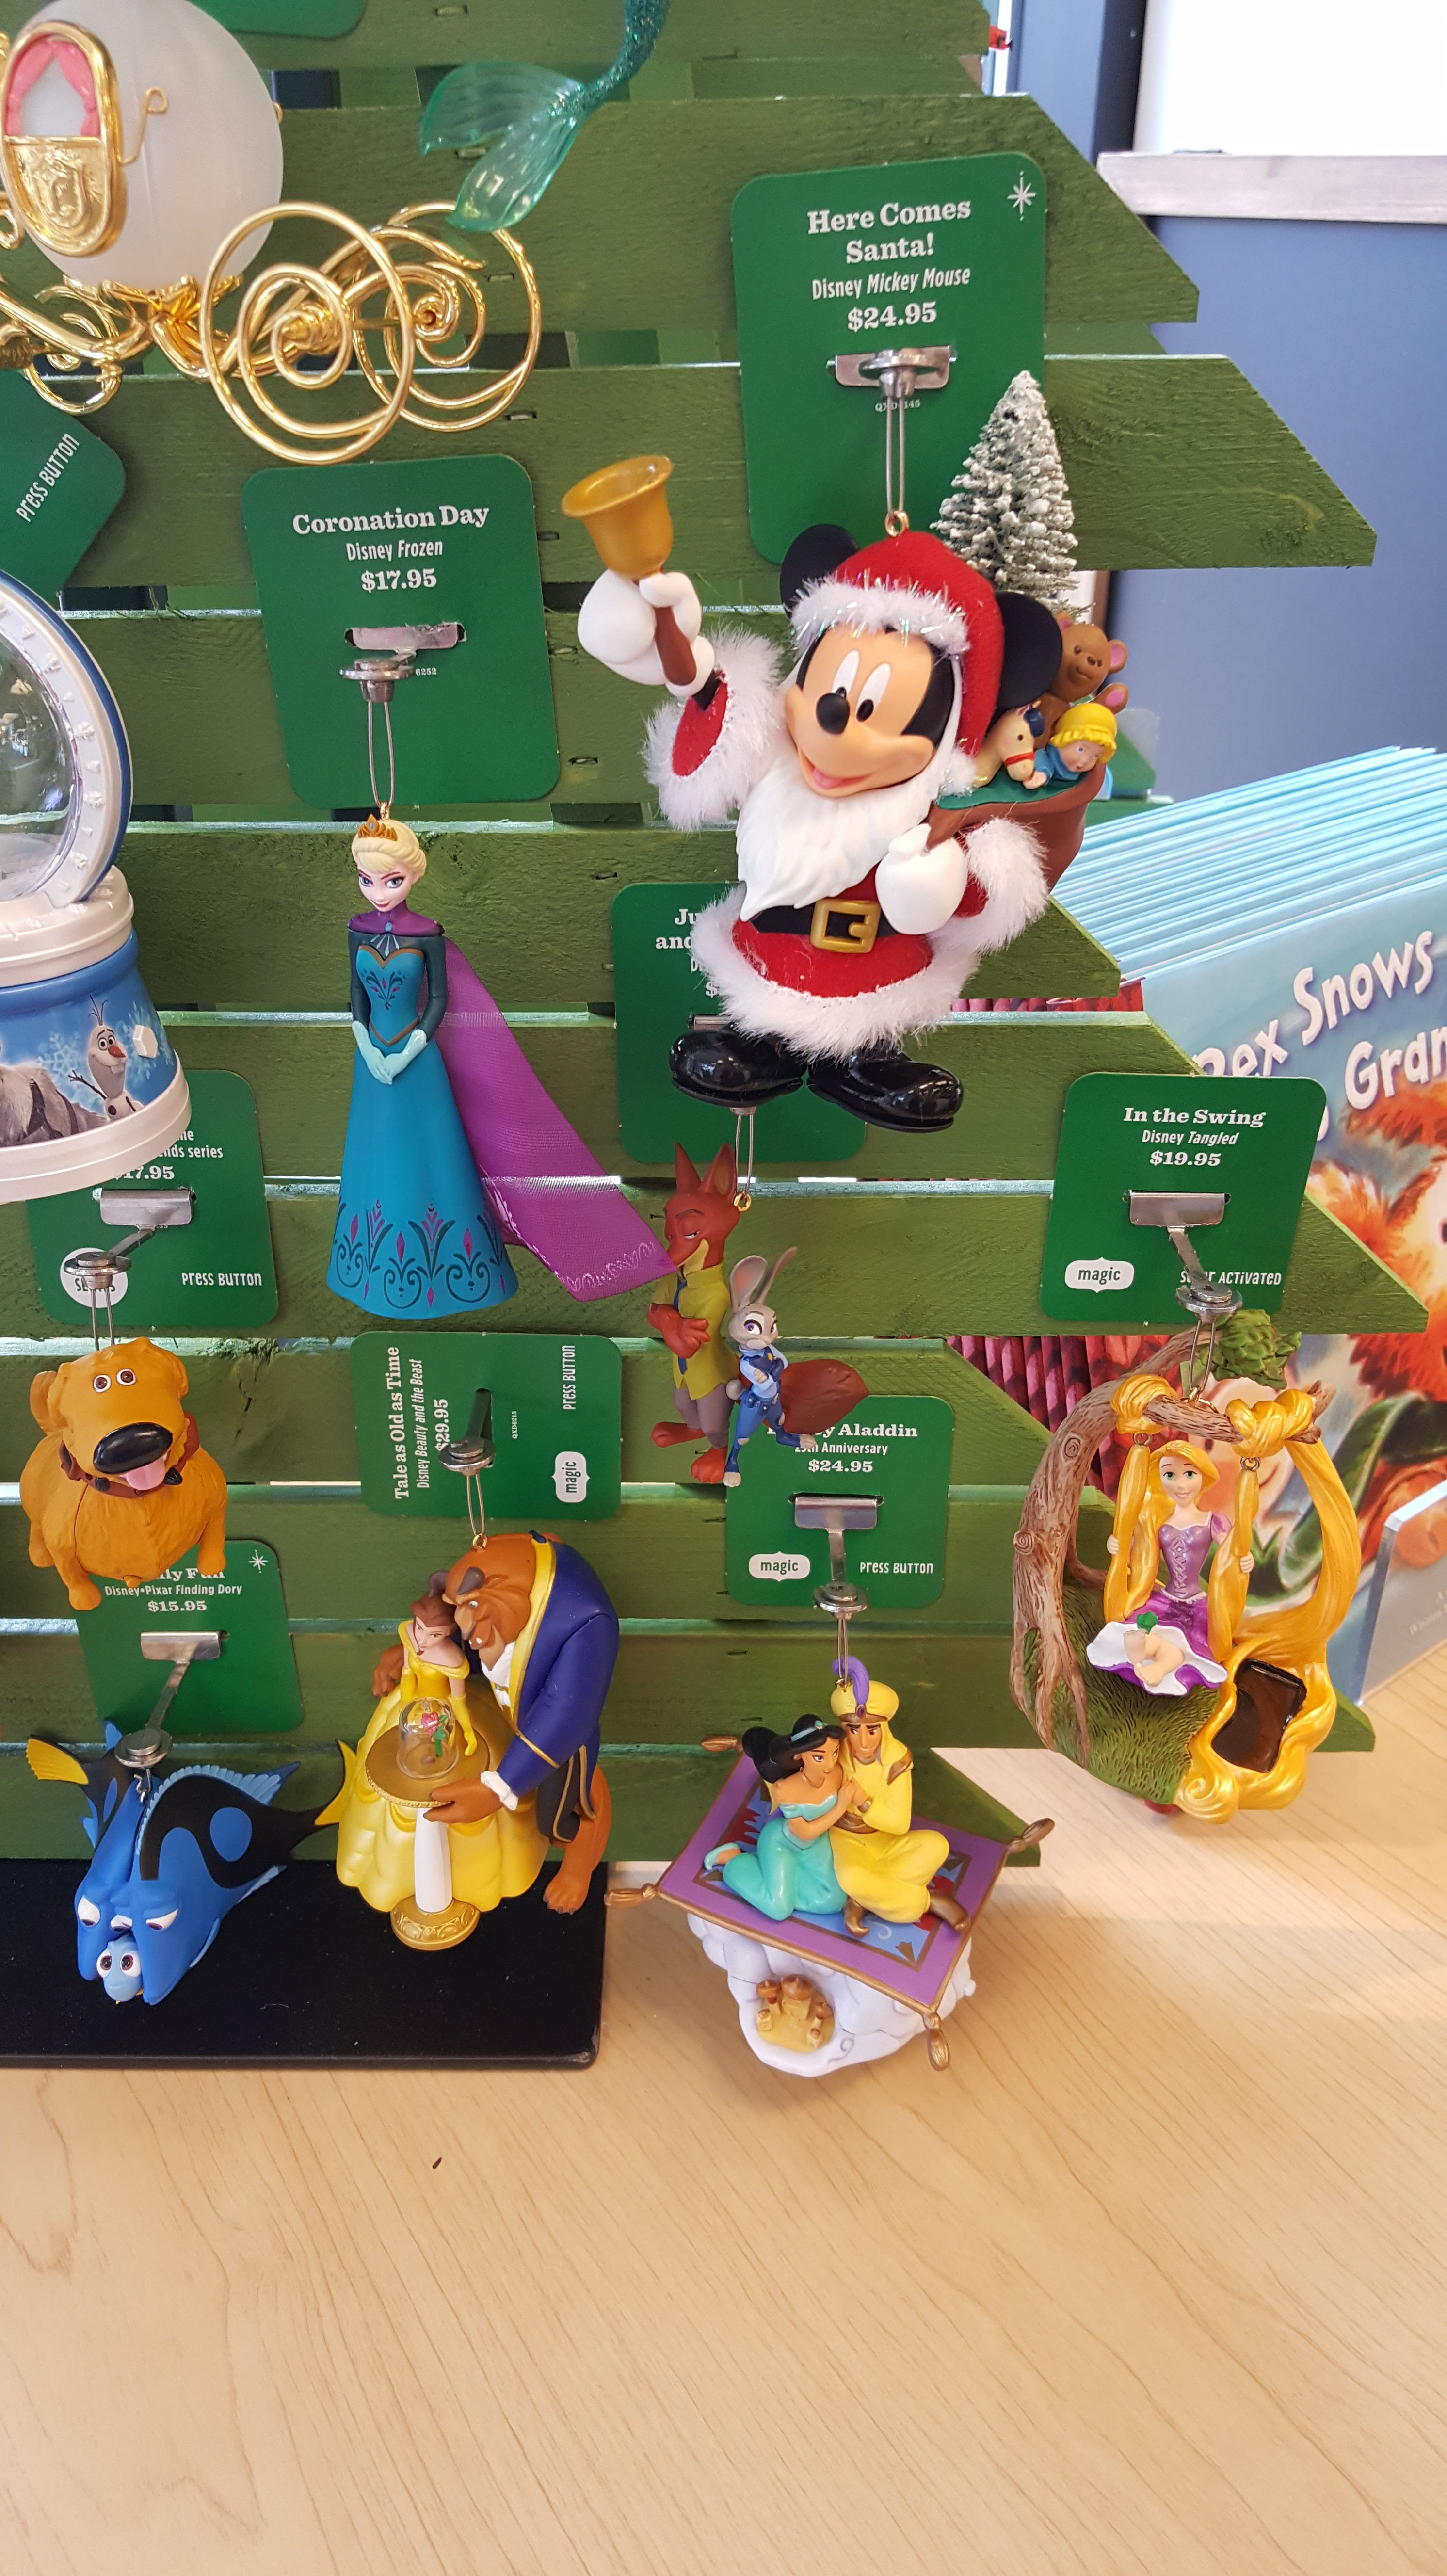 The Hallmark Disney Christmas Ornament Debut is